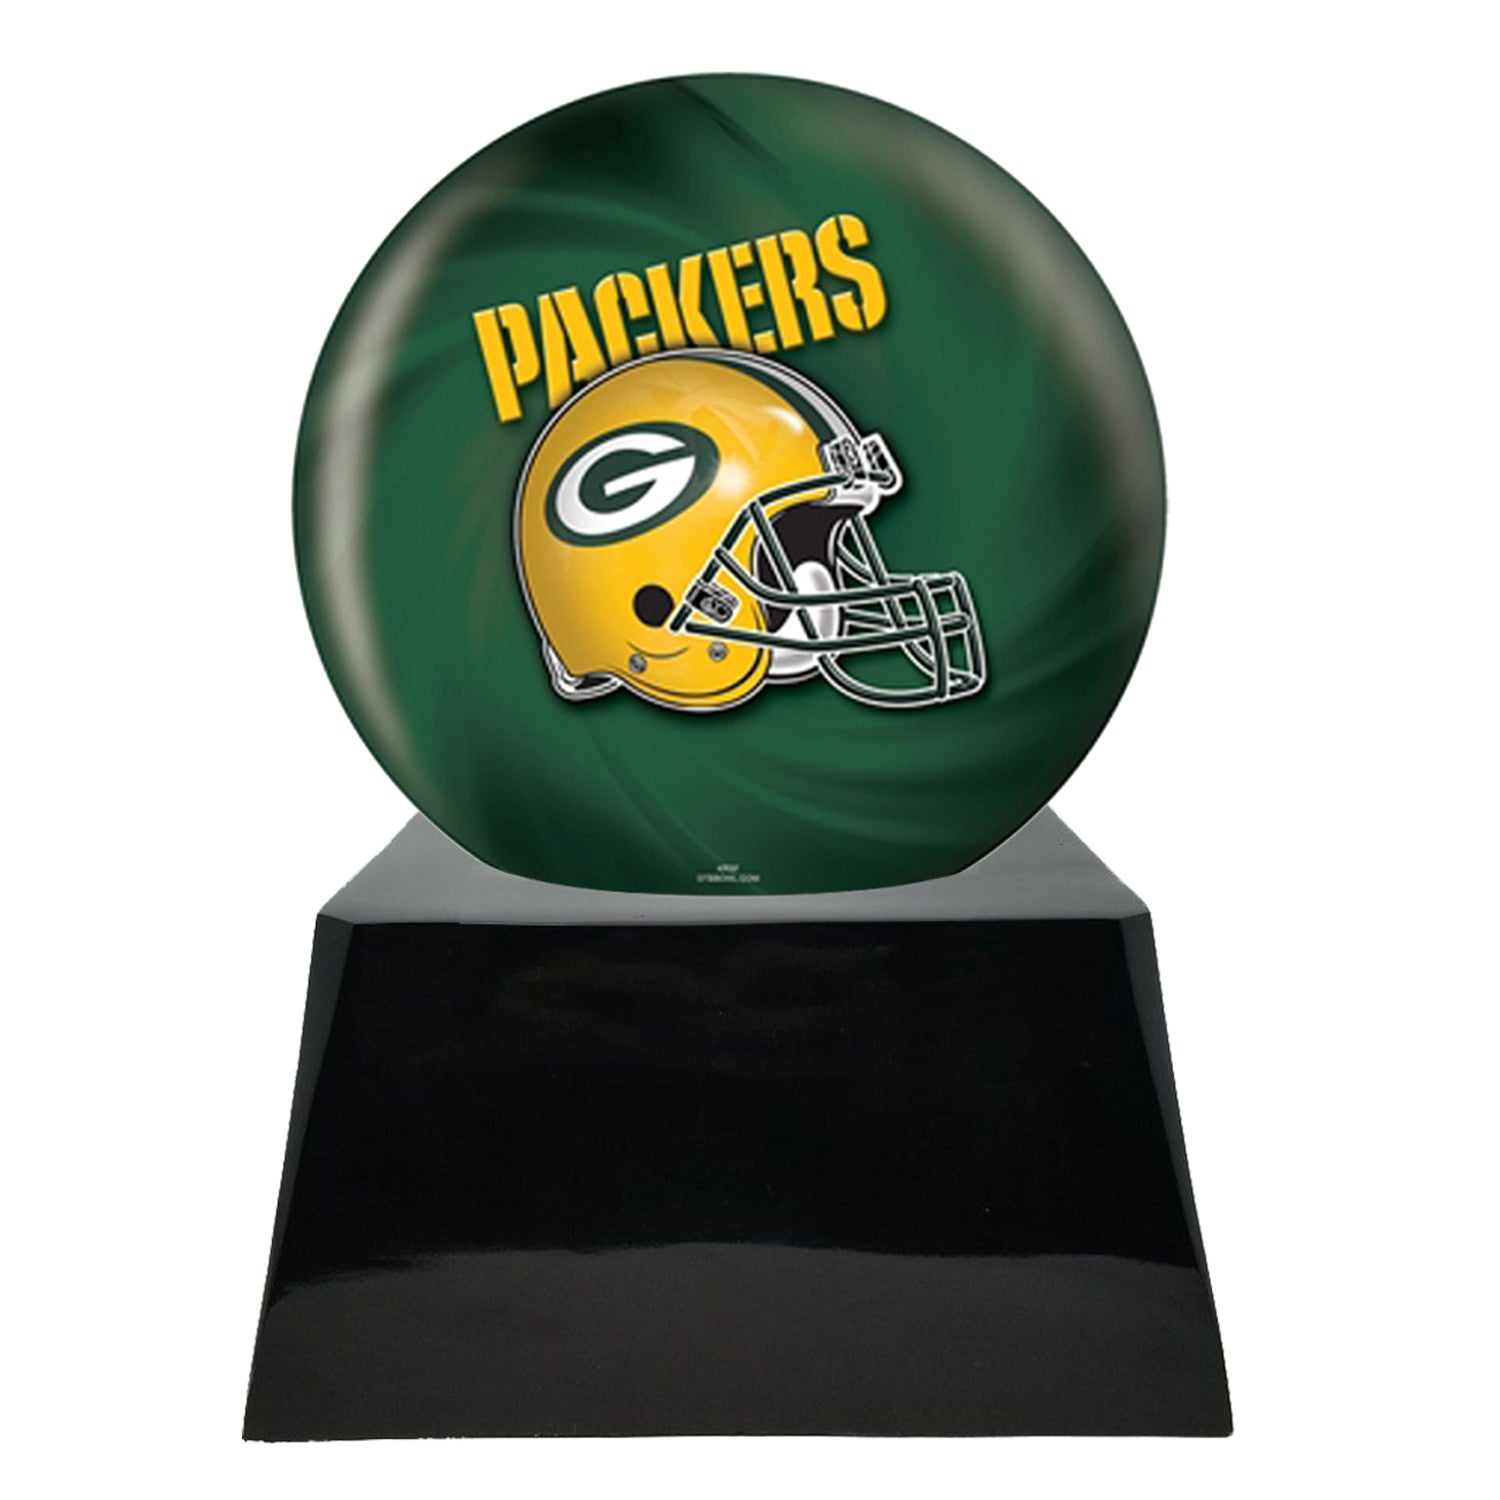 Football Cremation Urns For Human Ashes - Football Cremation Urn and Greenbay Packers Ball Decor with Custom Metal Plaque